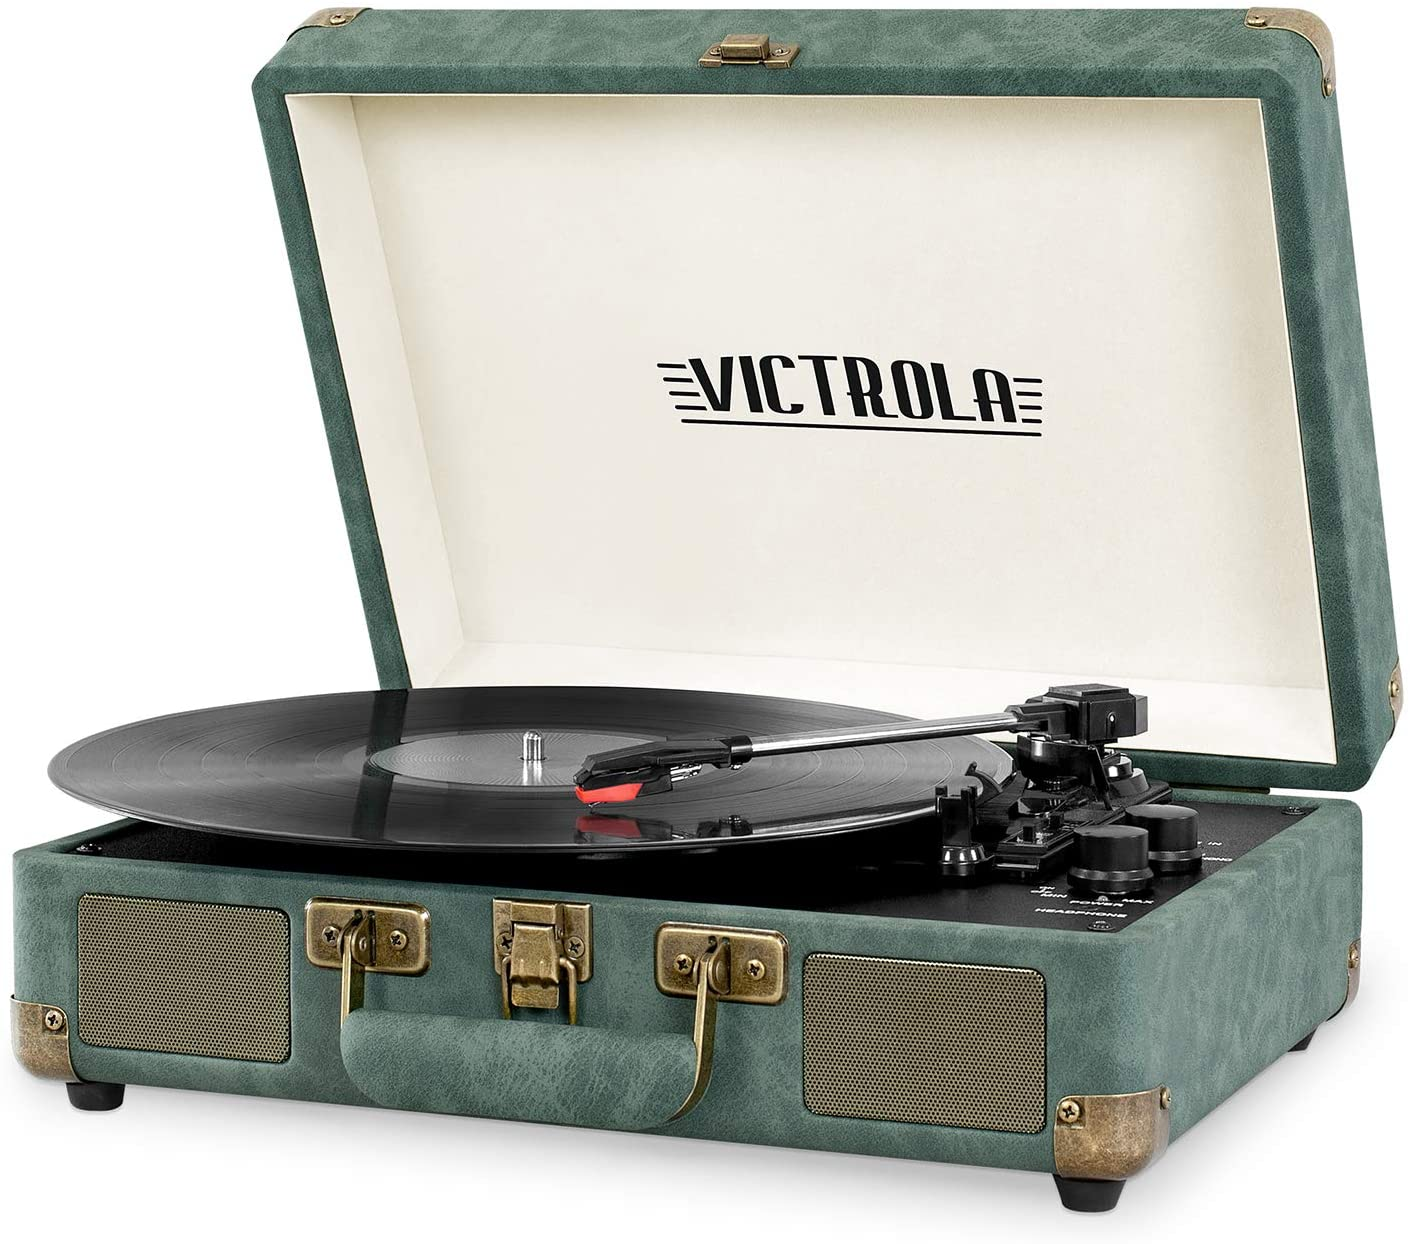 Victrola Vintage 3-Speed Bluetooth Portable Suitcase Record Player with Built-in Speakers | Upgraded Turntable Audio Sound| Includes Extra Stylus | Emerald Green